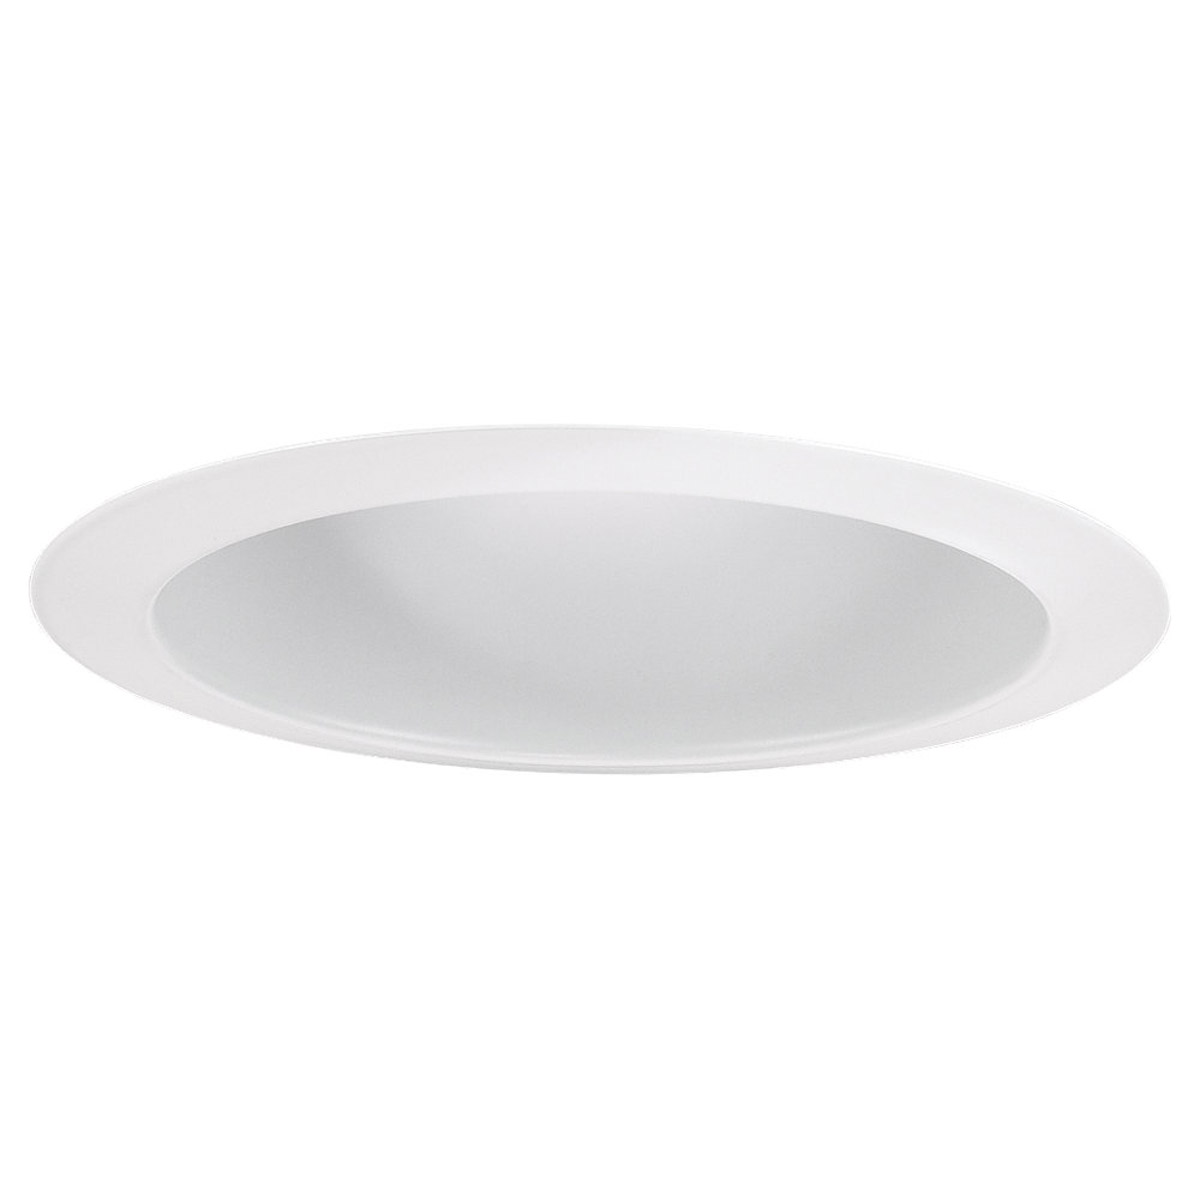 Sea Gull Lighting Signature Recessed Trim Only in White 11132AT-14 photo